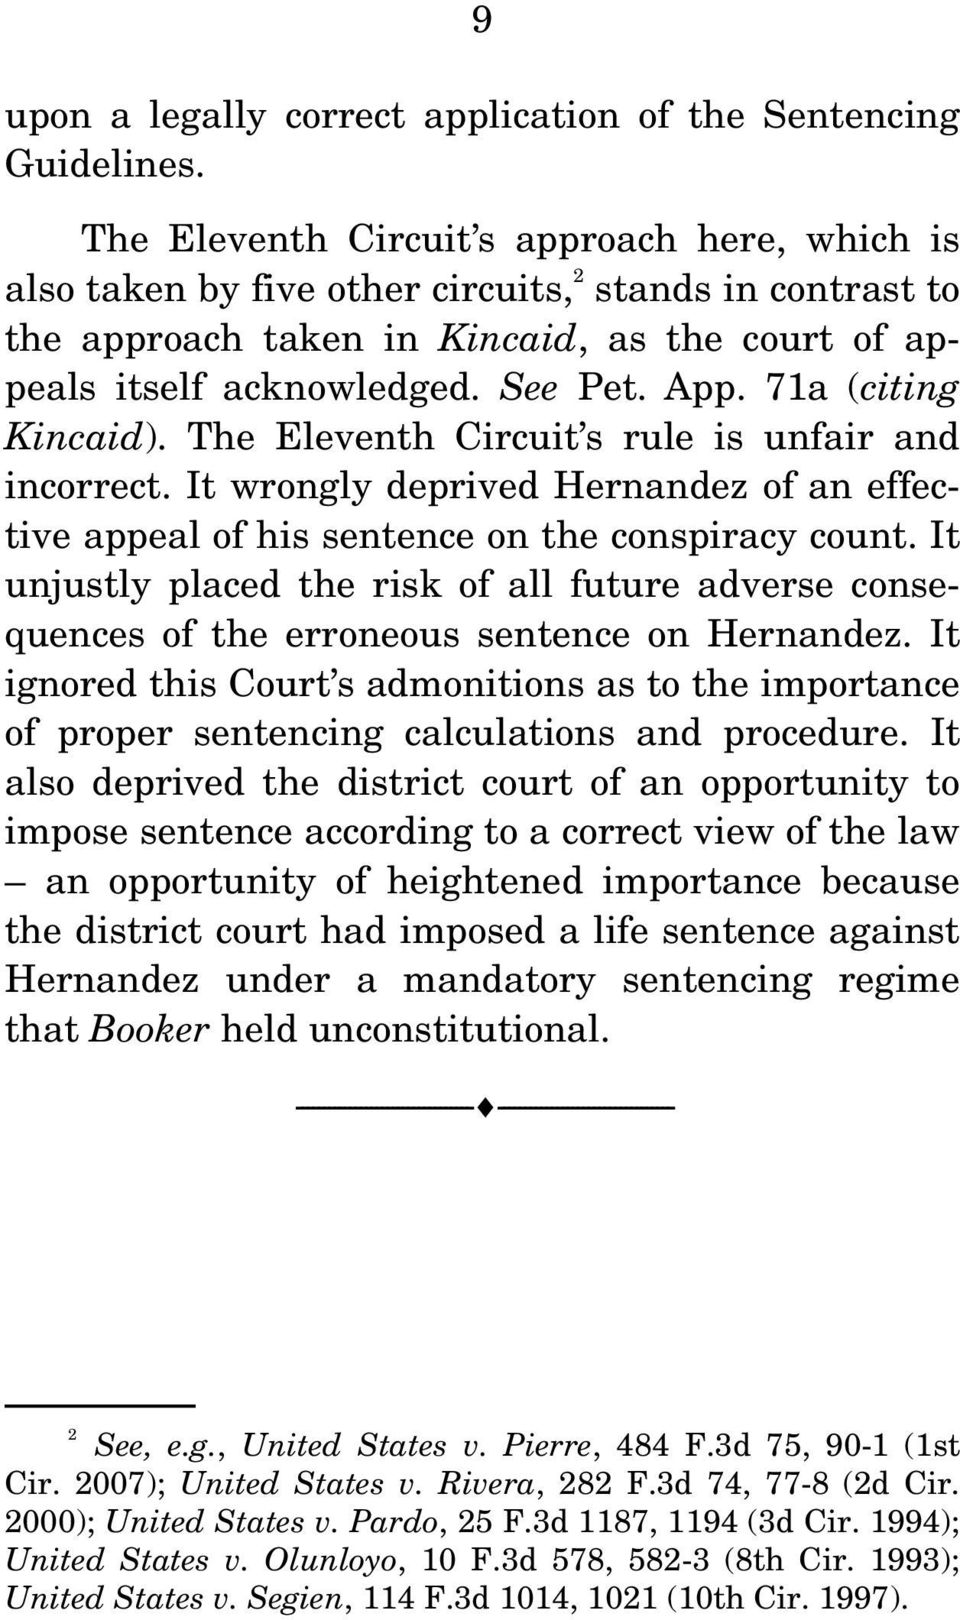 71a (citing Kincaid). The Eleventh Circuit s rule is unfair and incorrect. It wrongly deprived Hernandez of an effective appeal of his sentence on the conspiracy count.